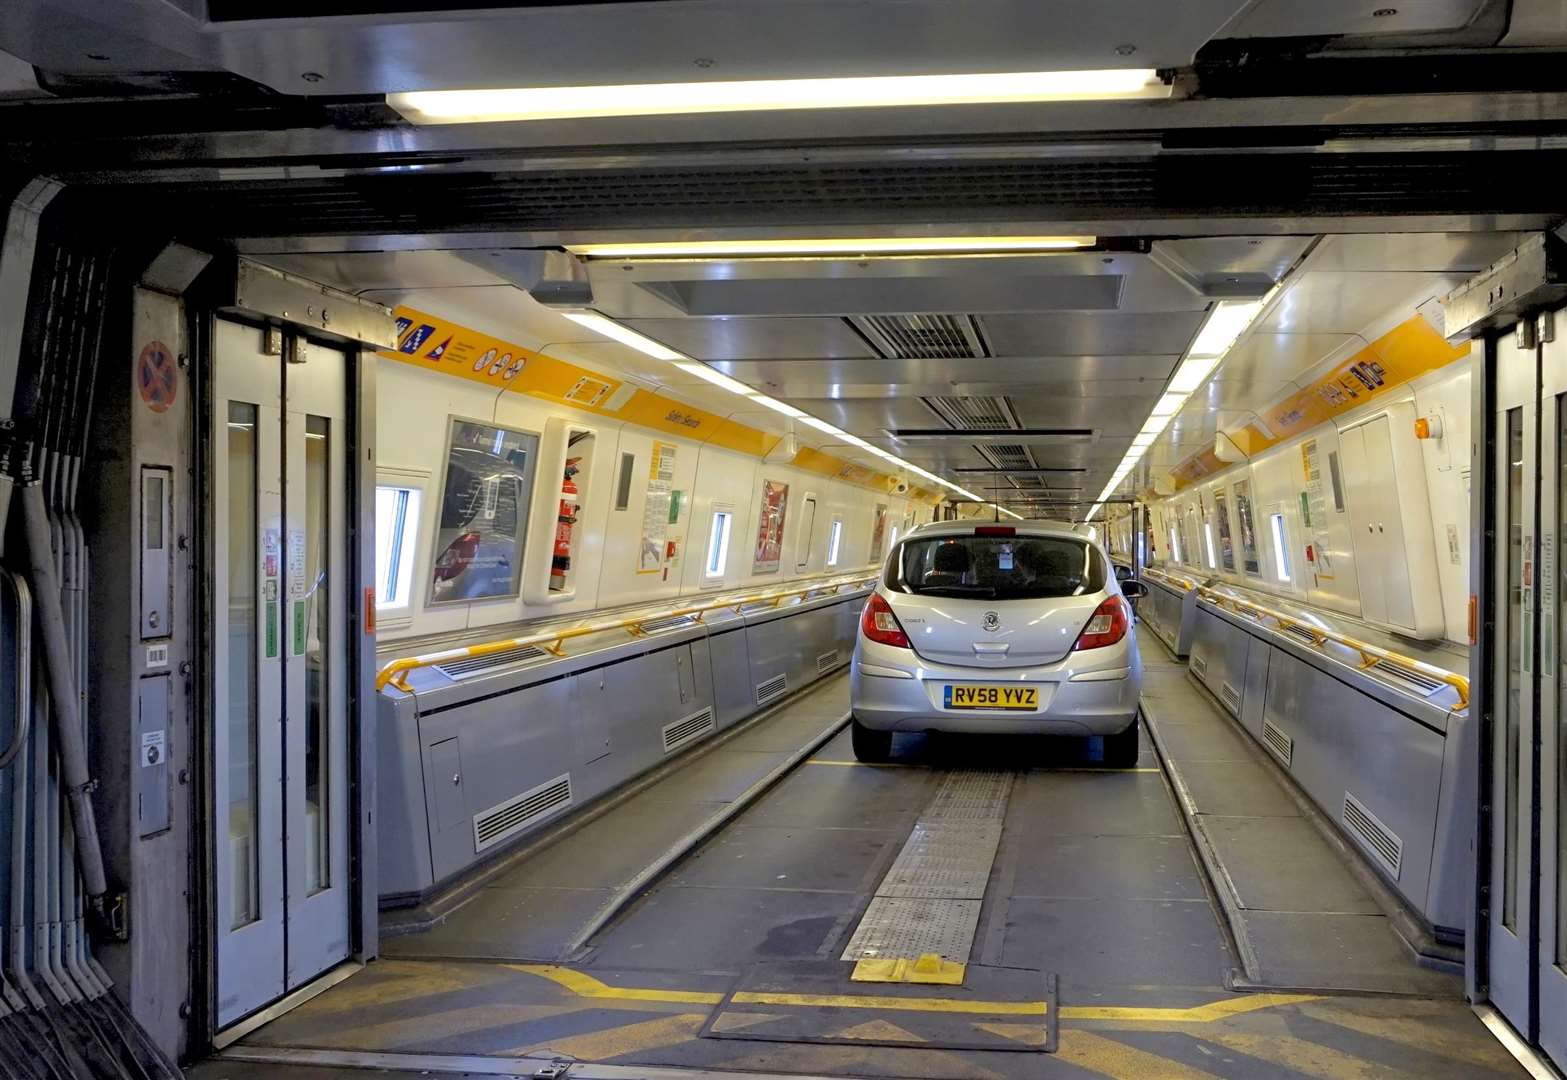 Severe travel delays after train stops in Eurotunnel